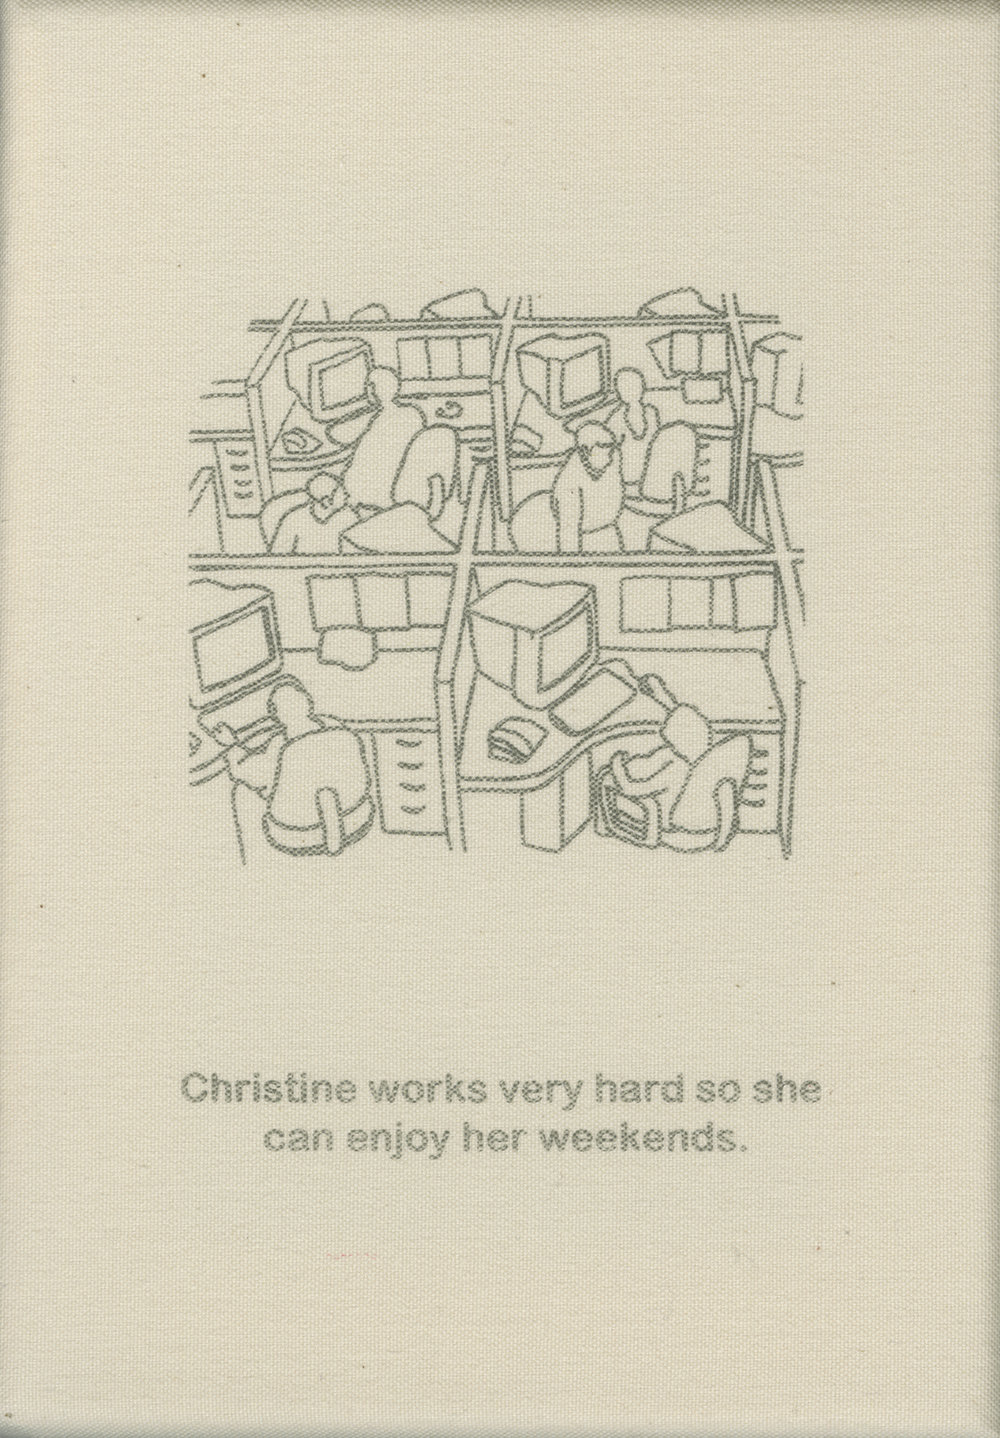 Christine works very hard so she can enjoy her weekends.